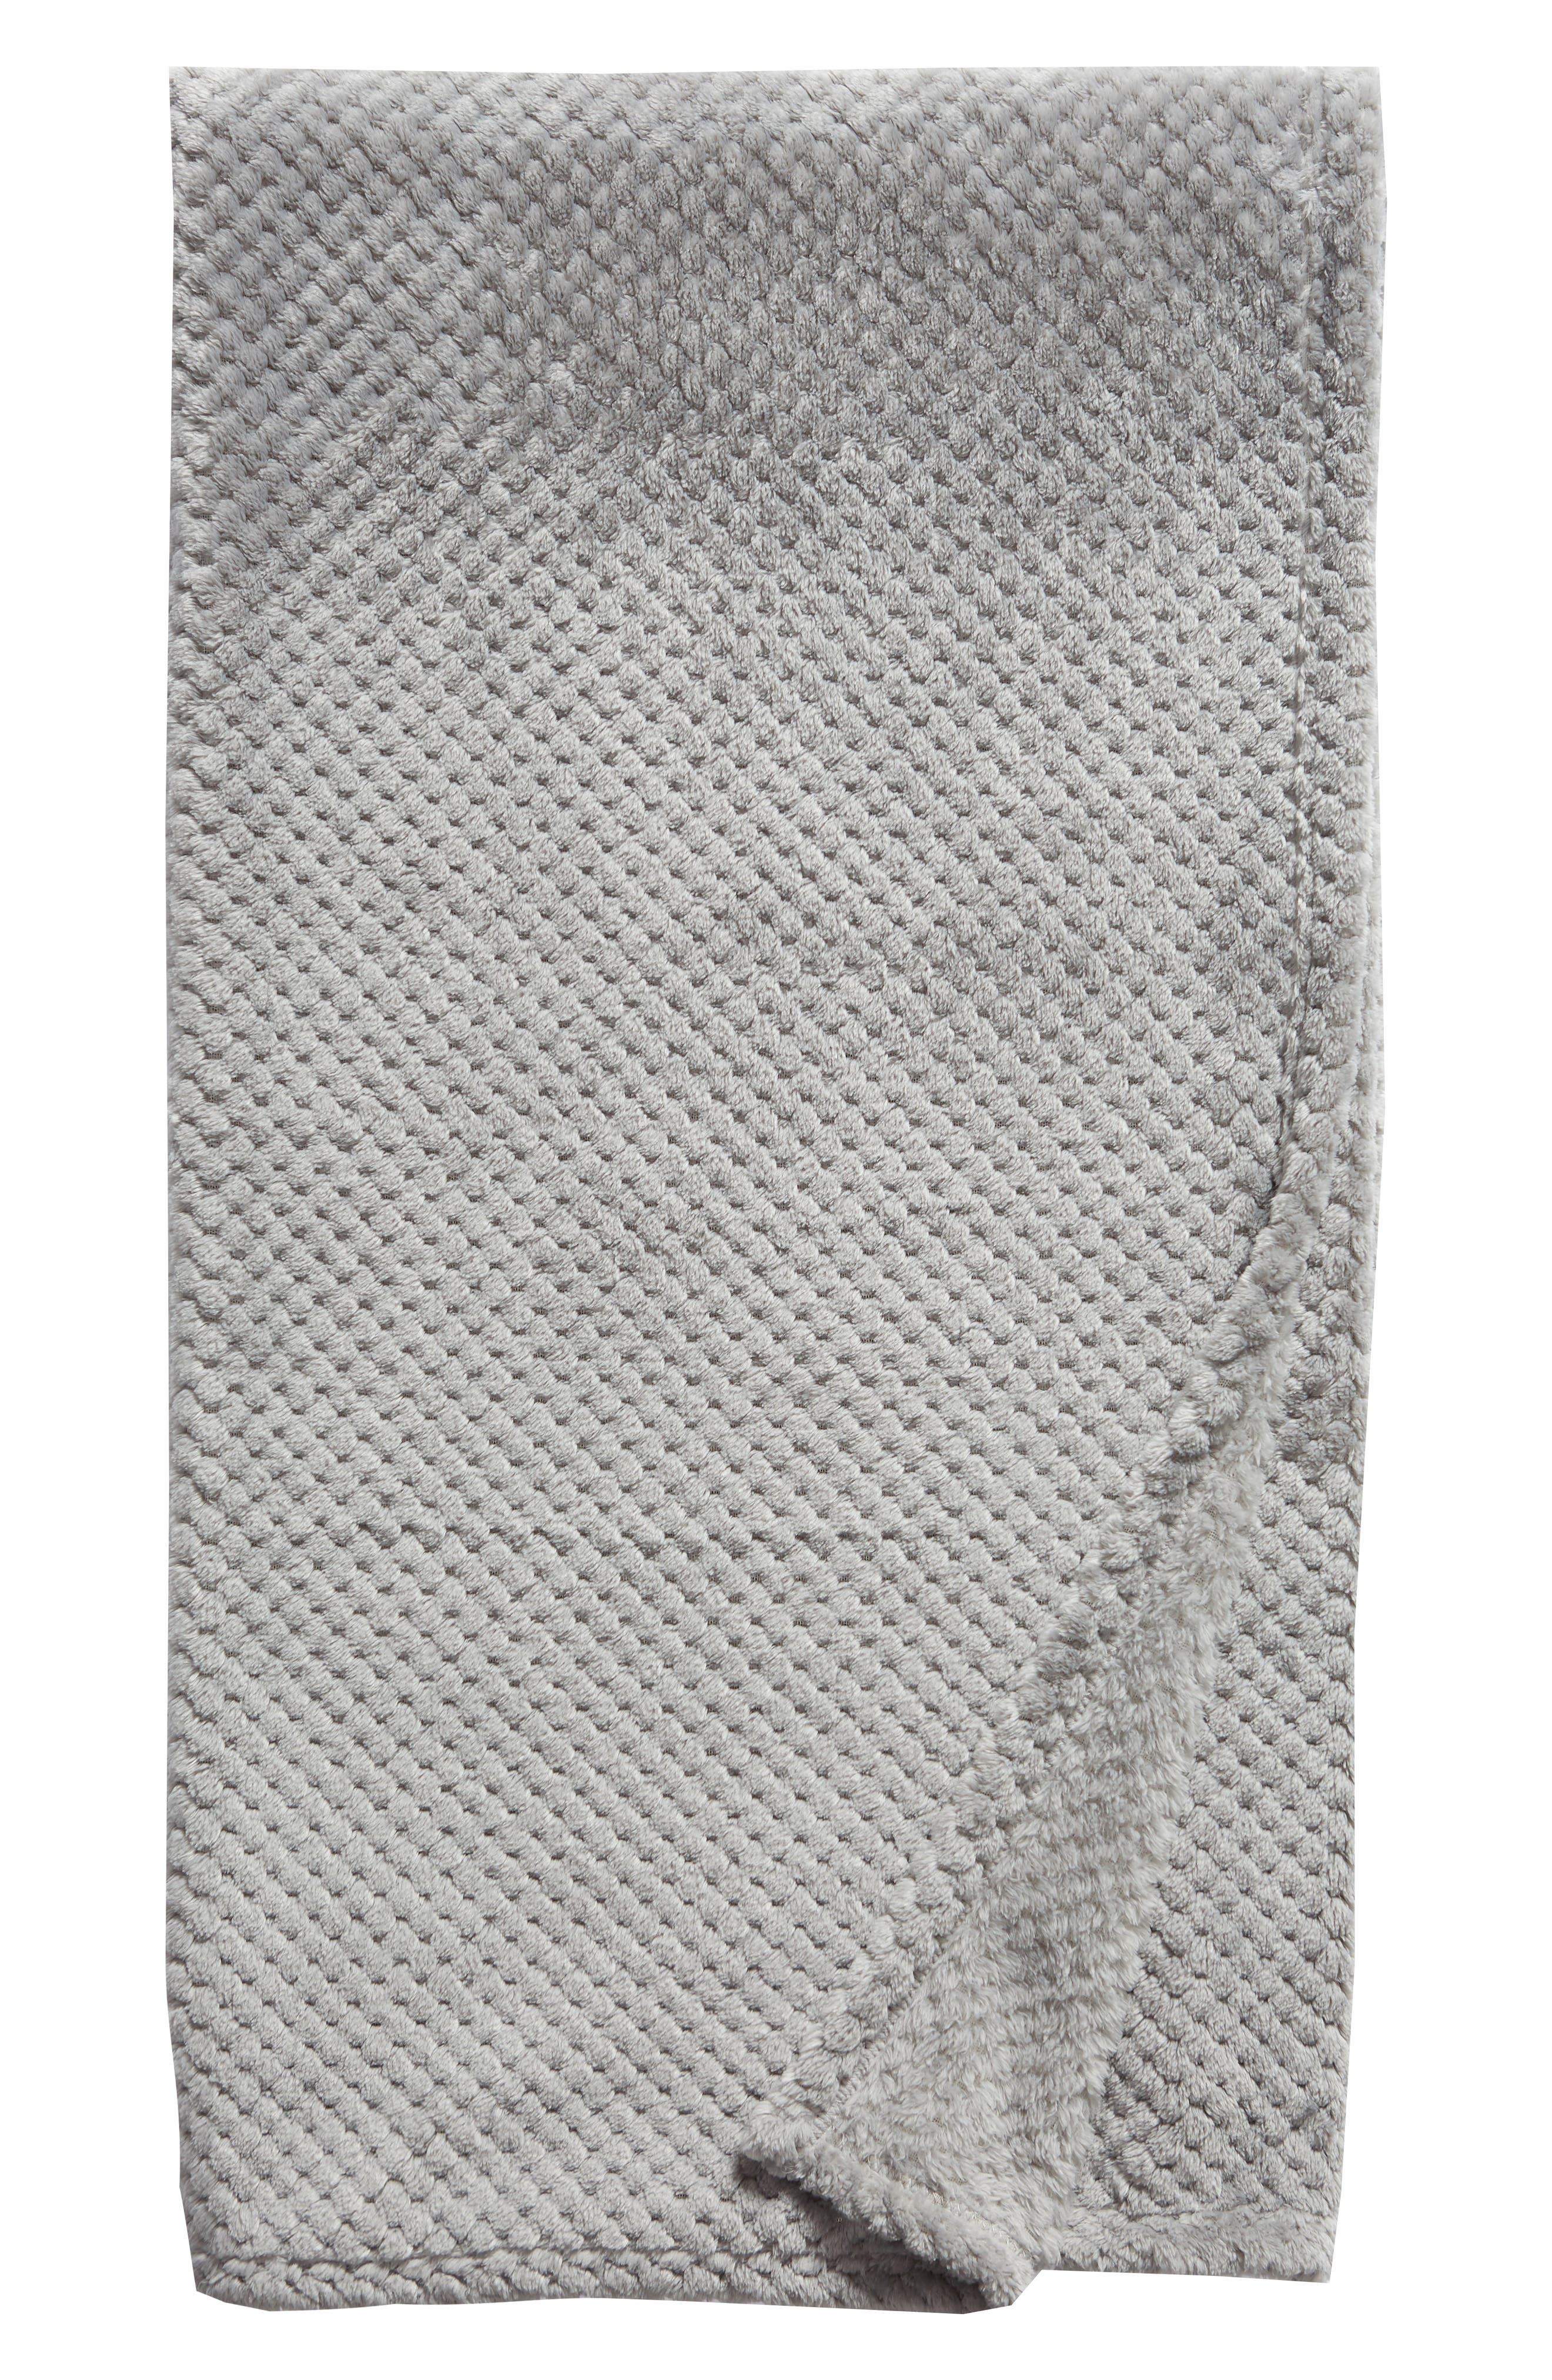 Waffle Plush Throw Blanket,                             Main thumbnail 1, color,                             GREY FROST